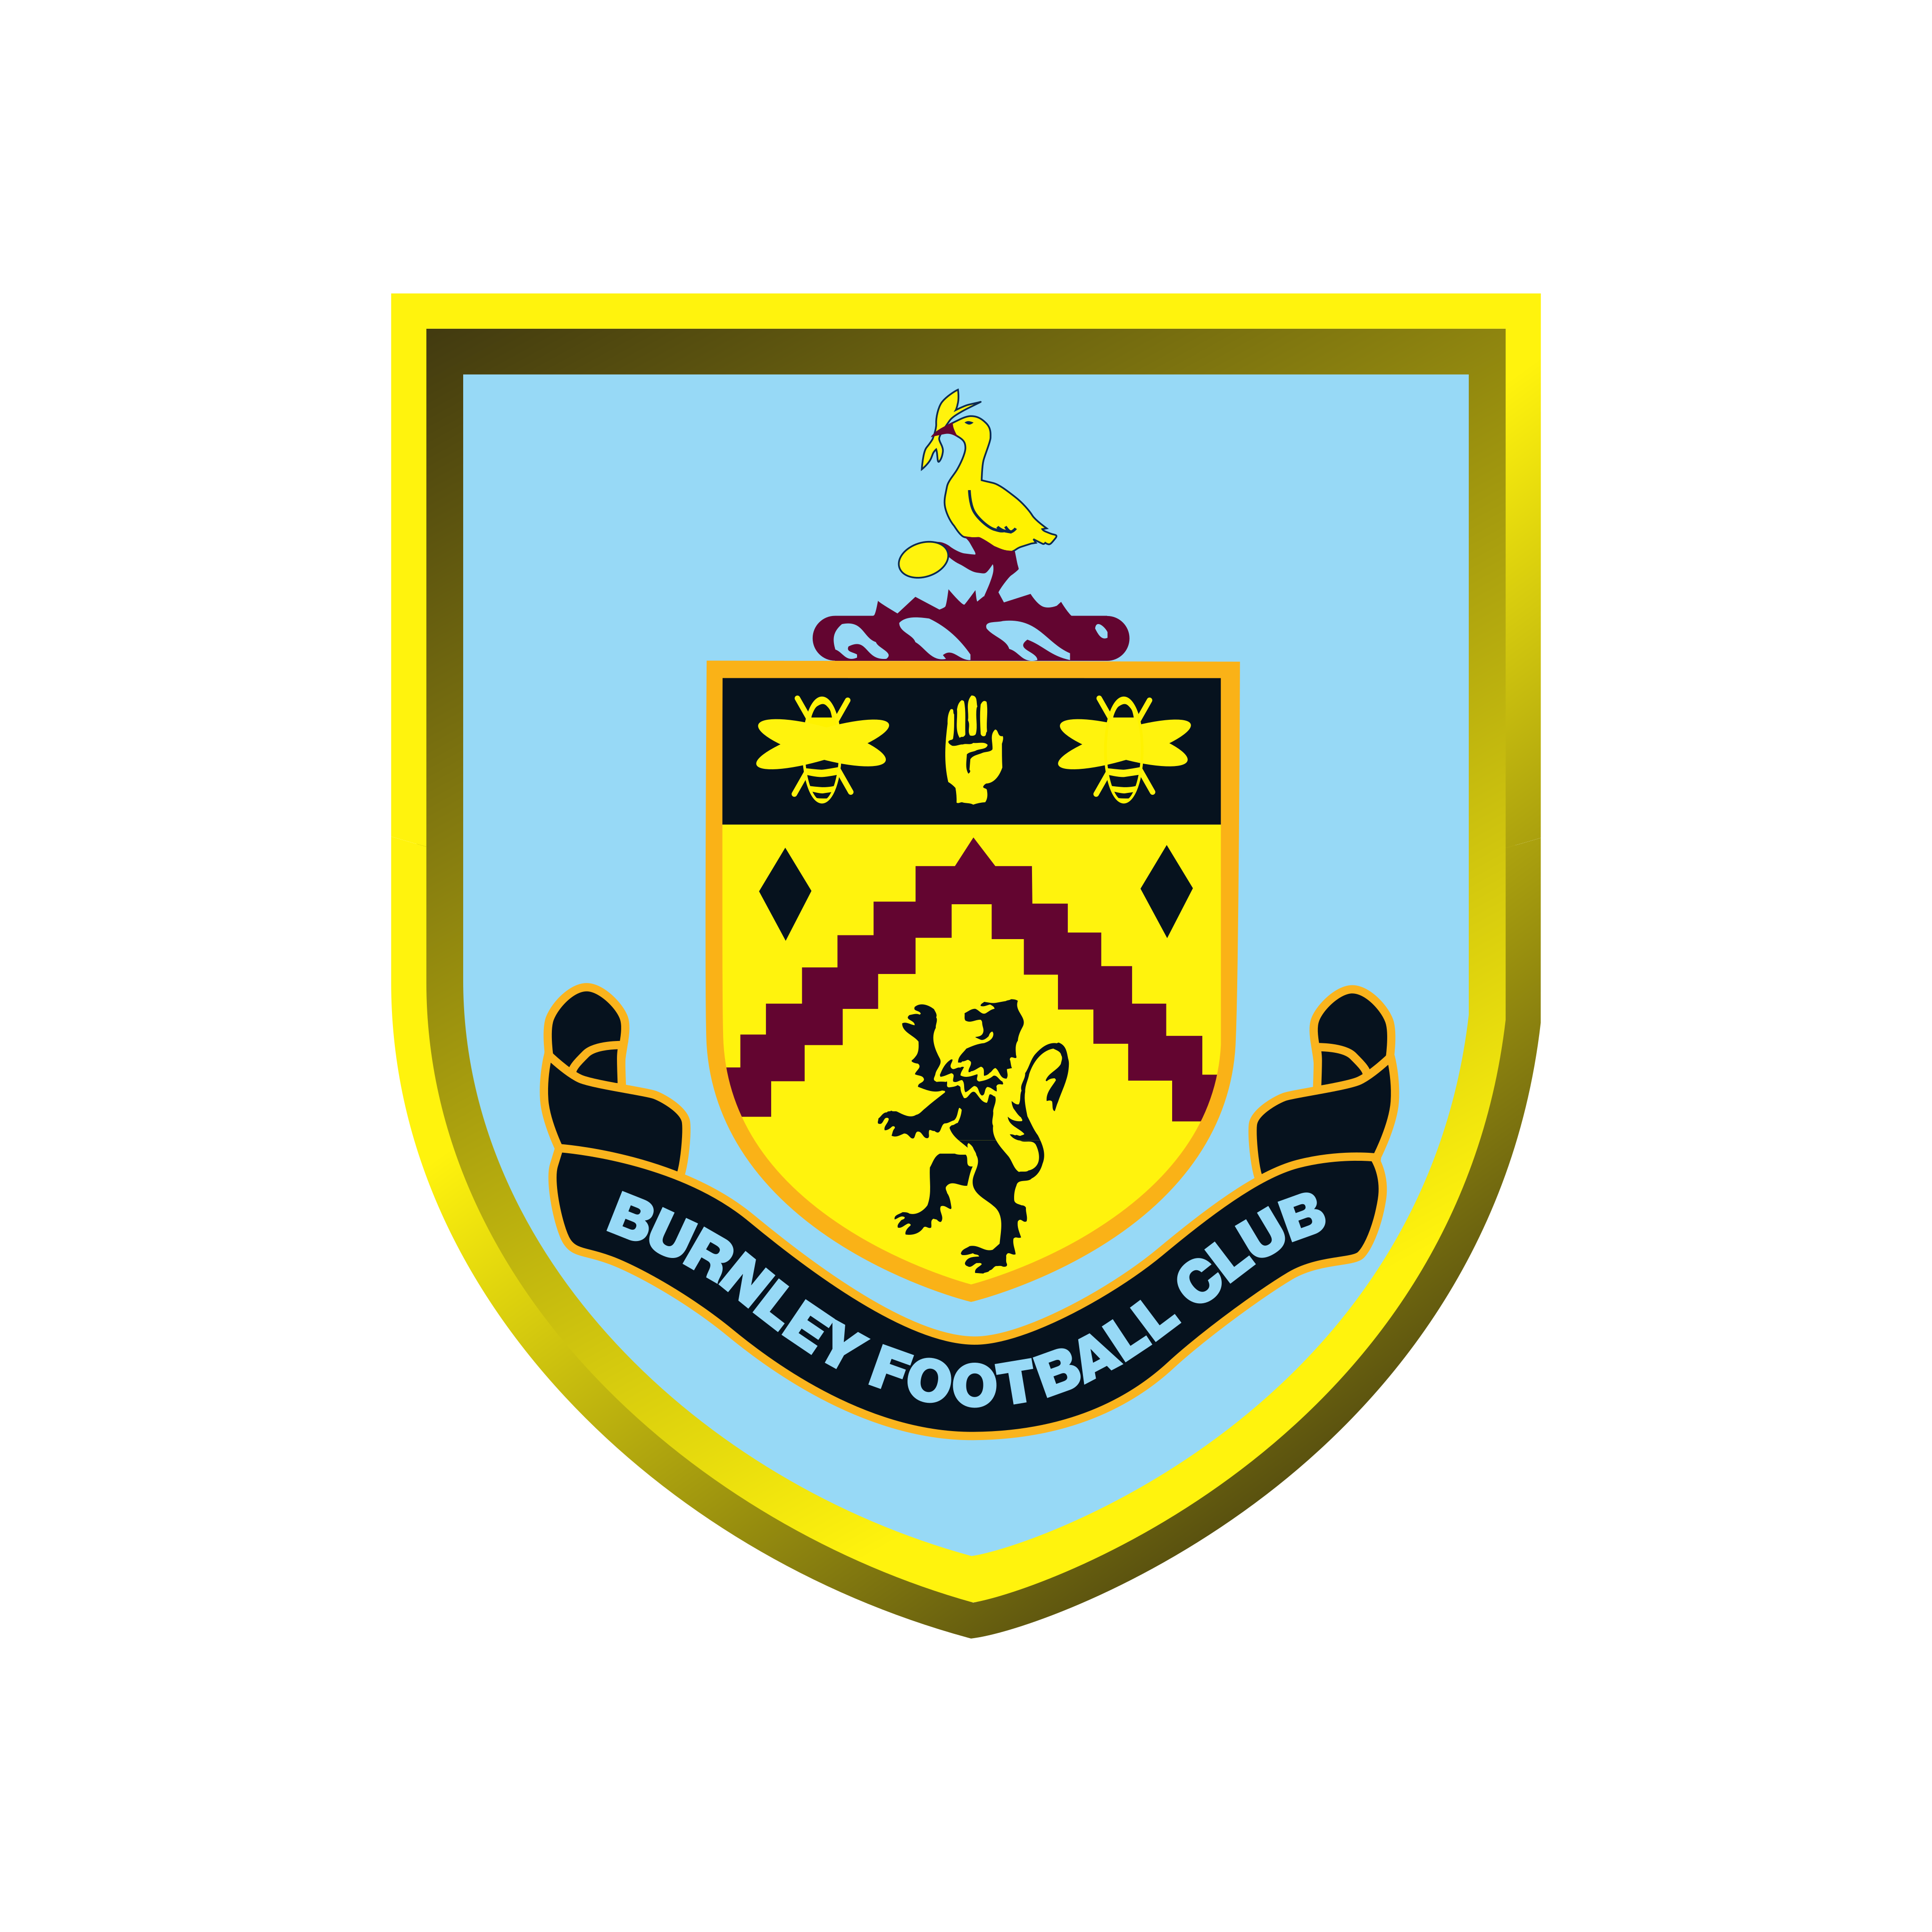 burnley logo 0 - Burnley FC Logo